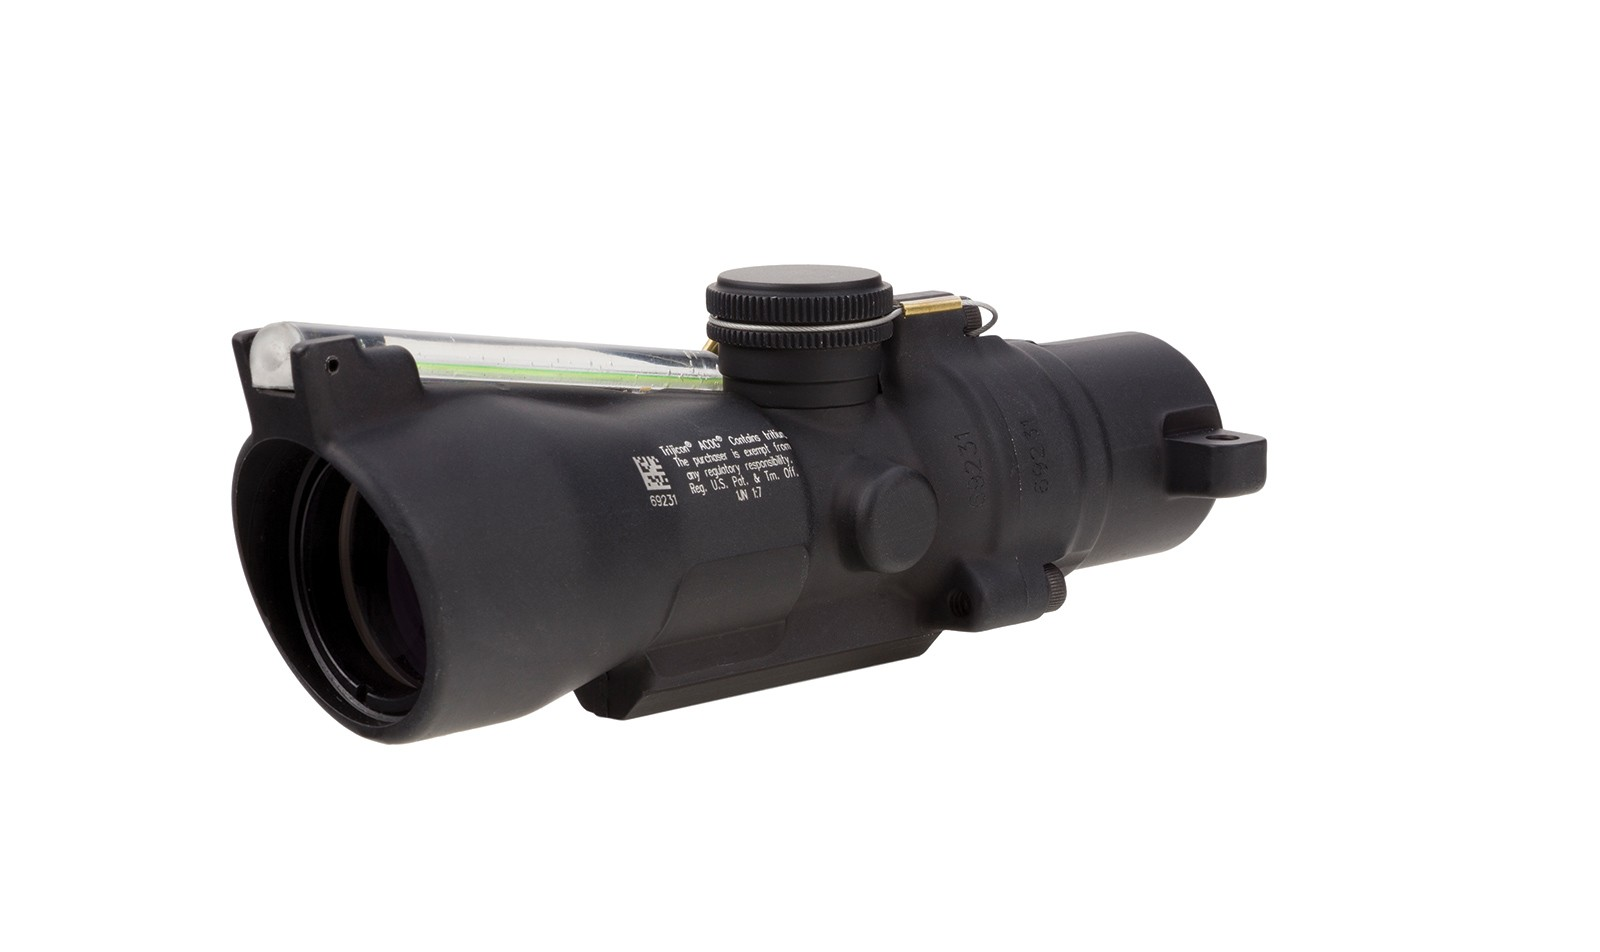 Trijicon ACOG® 3x24 BAC Riflescope - 7.62 x 39mm / 123 Grain